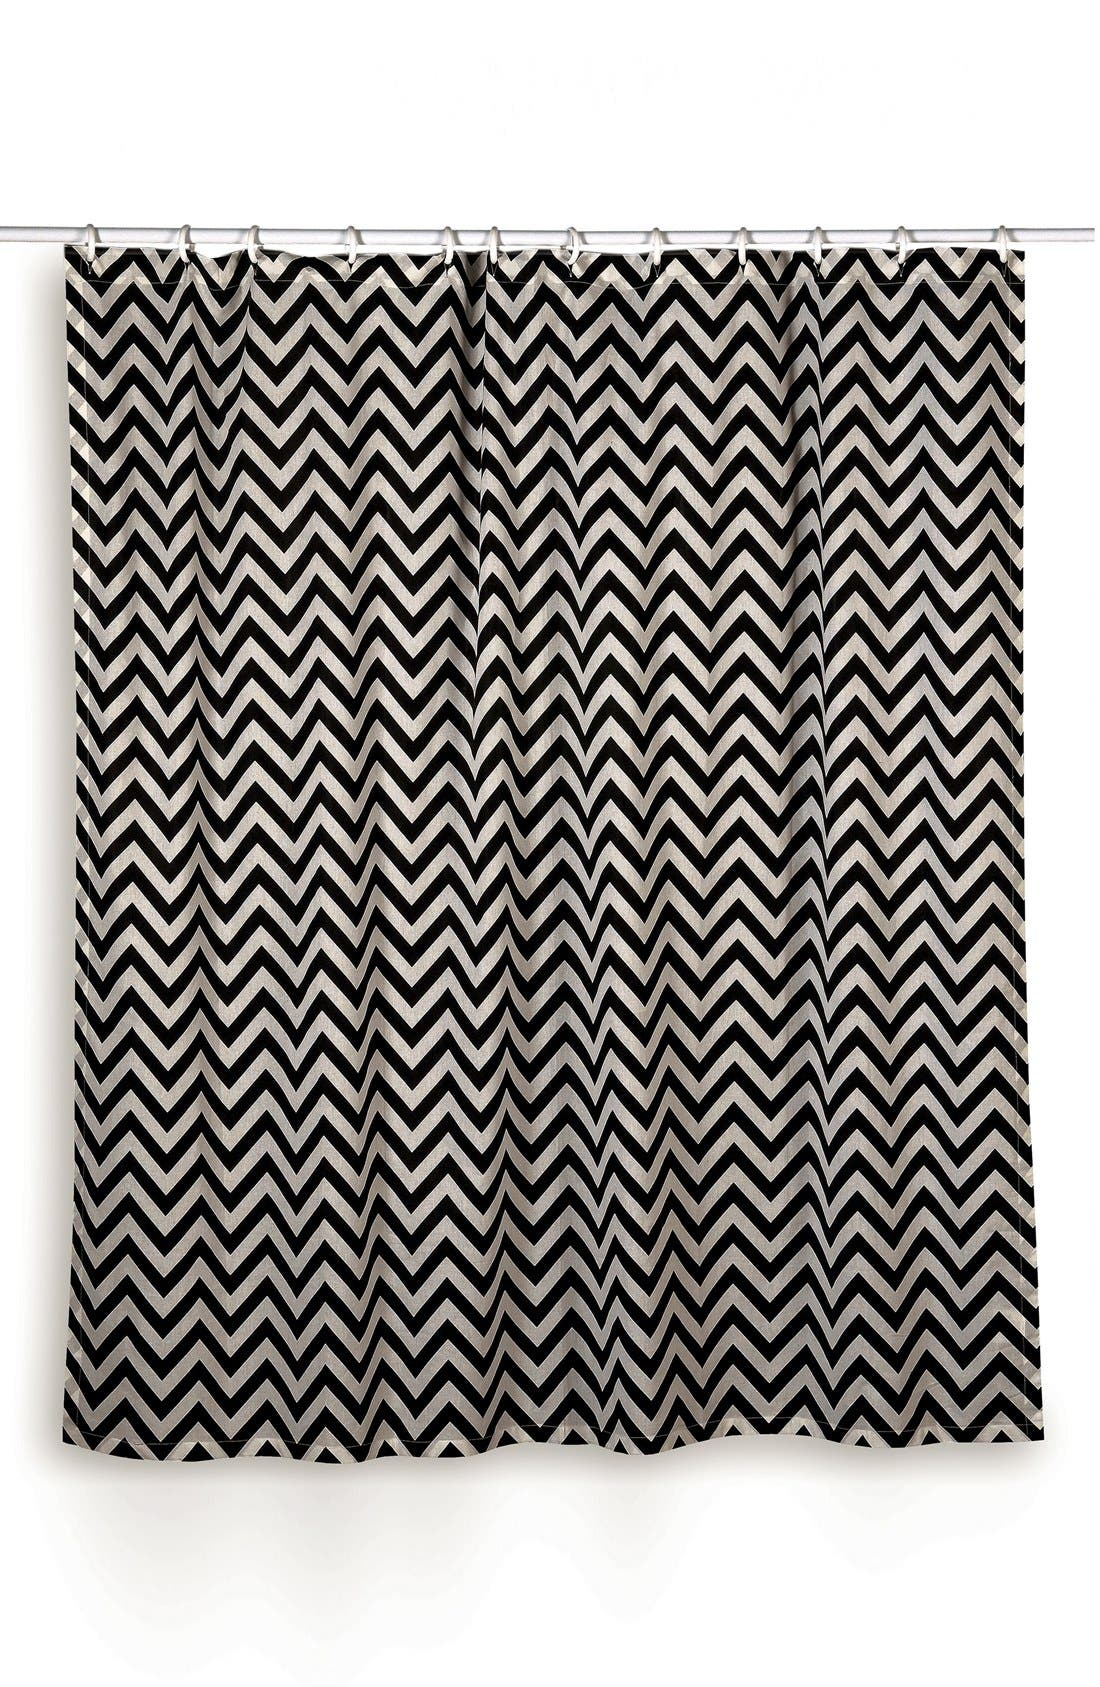 Alternate Image 1 Selected - Rizzy Home Chevron Shower Curtain